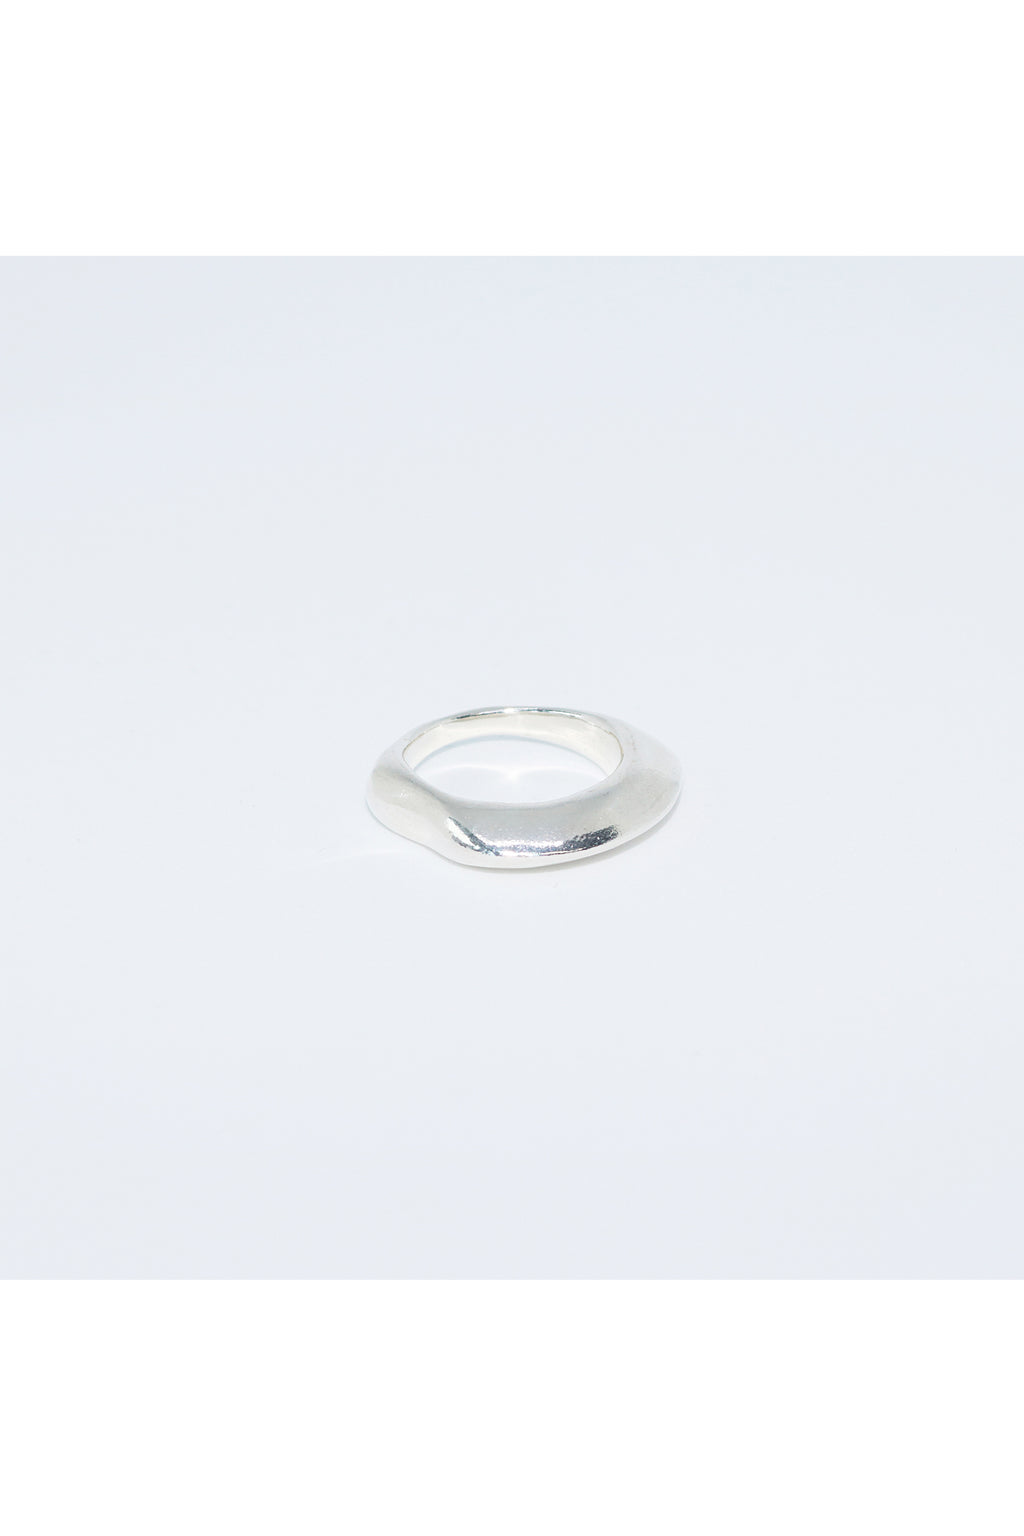 PICOMENT silver floating bony ring